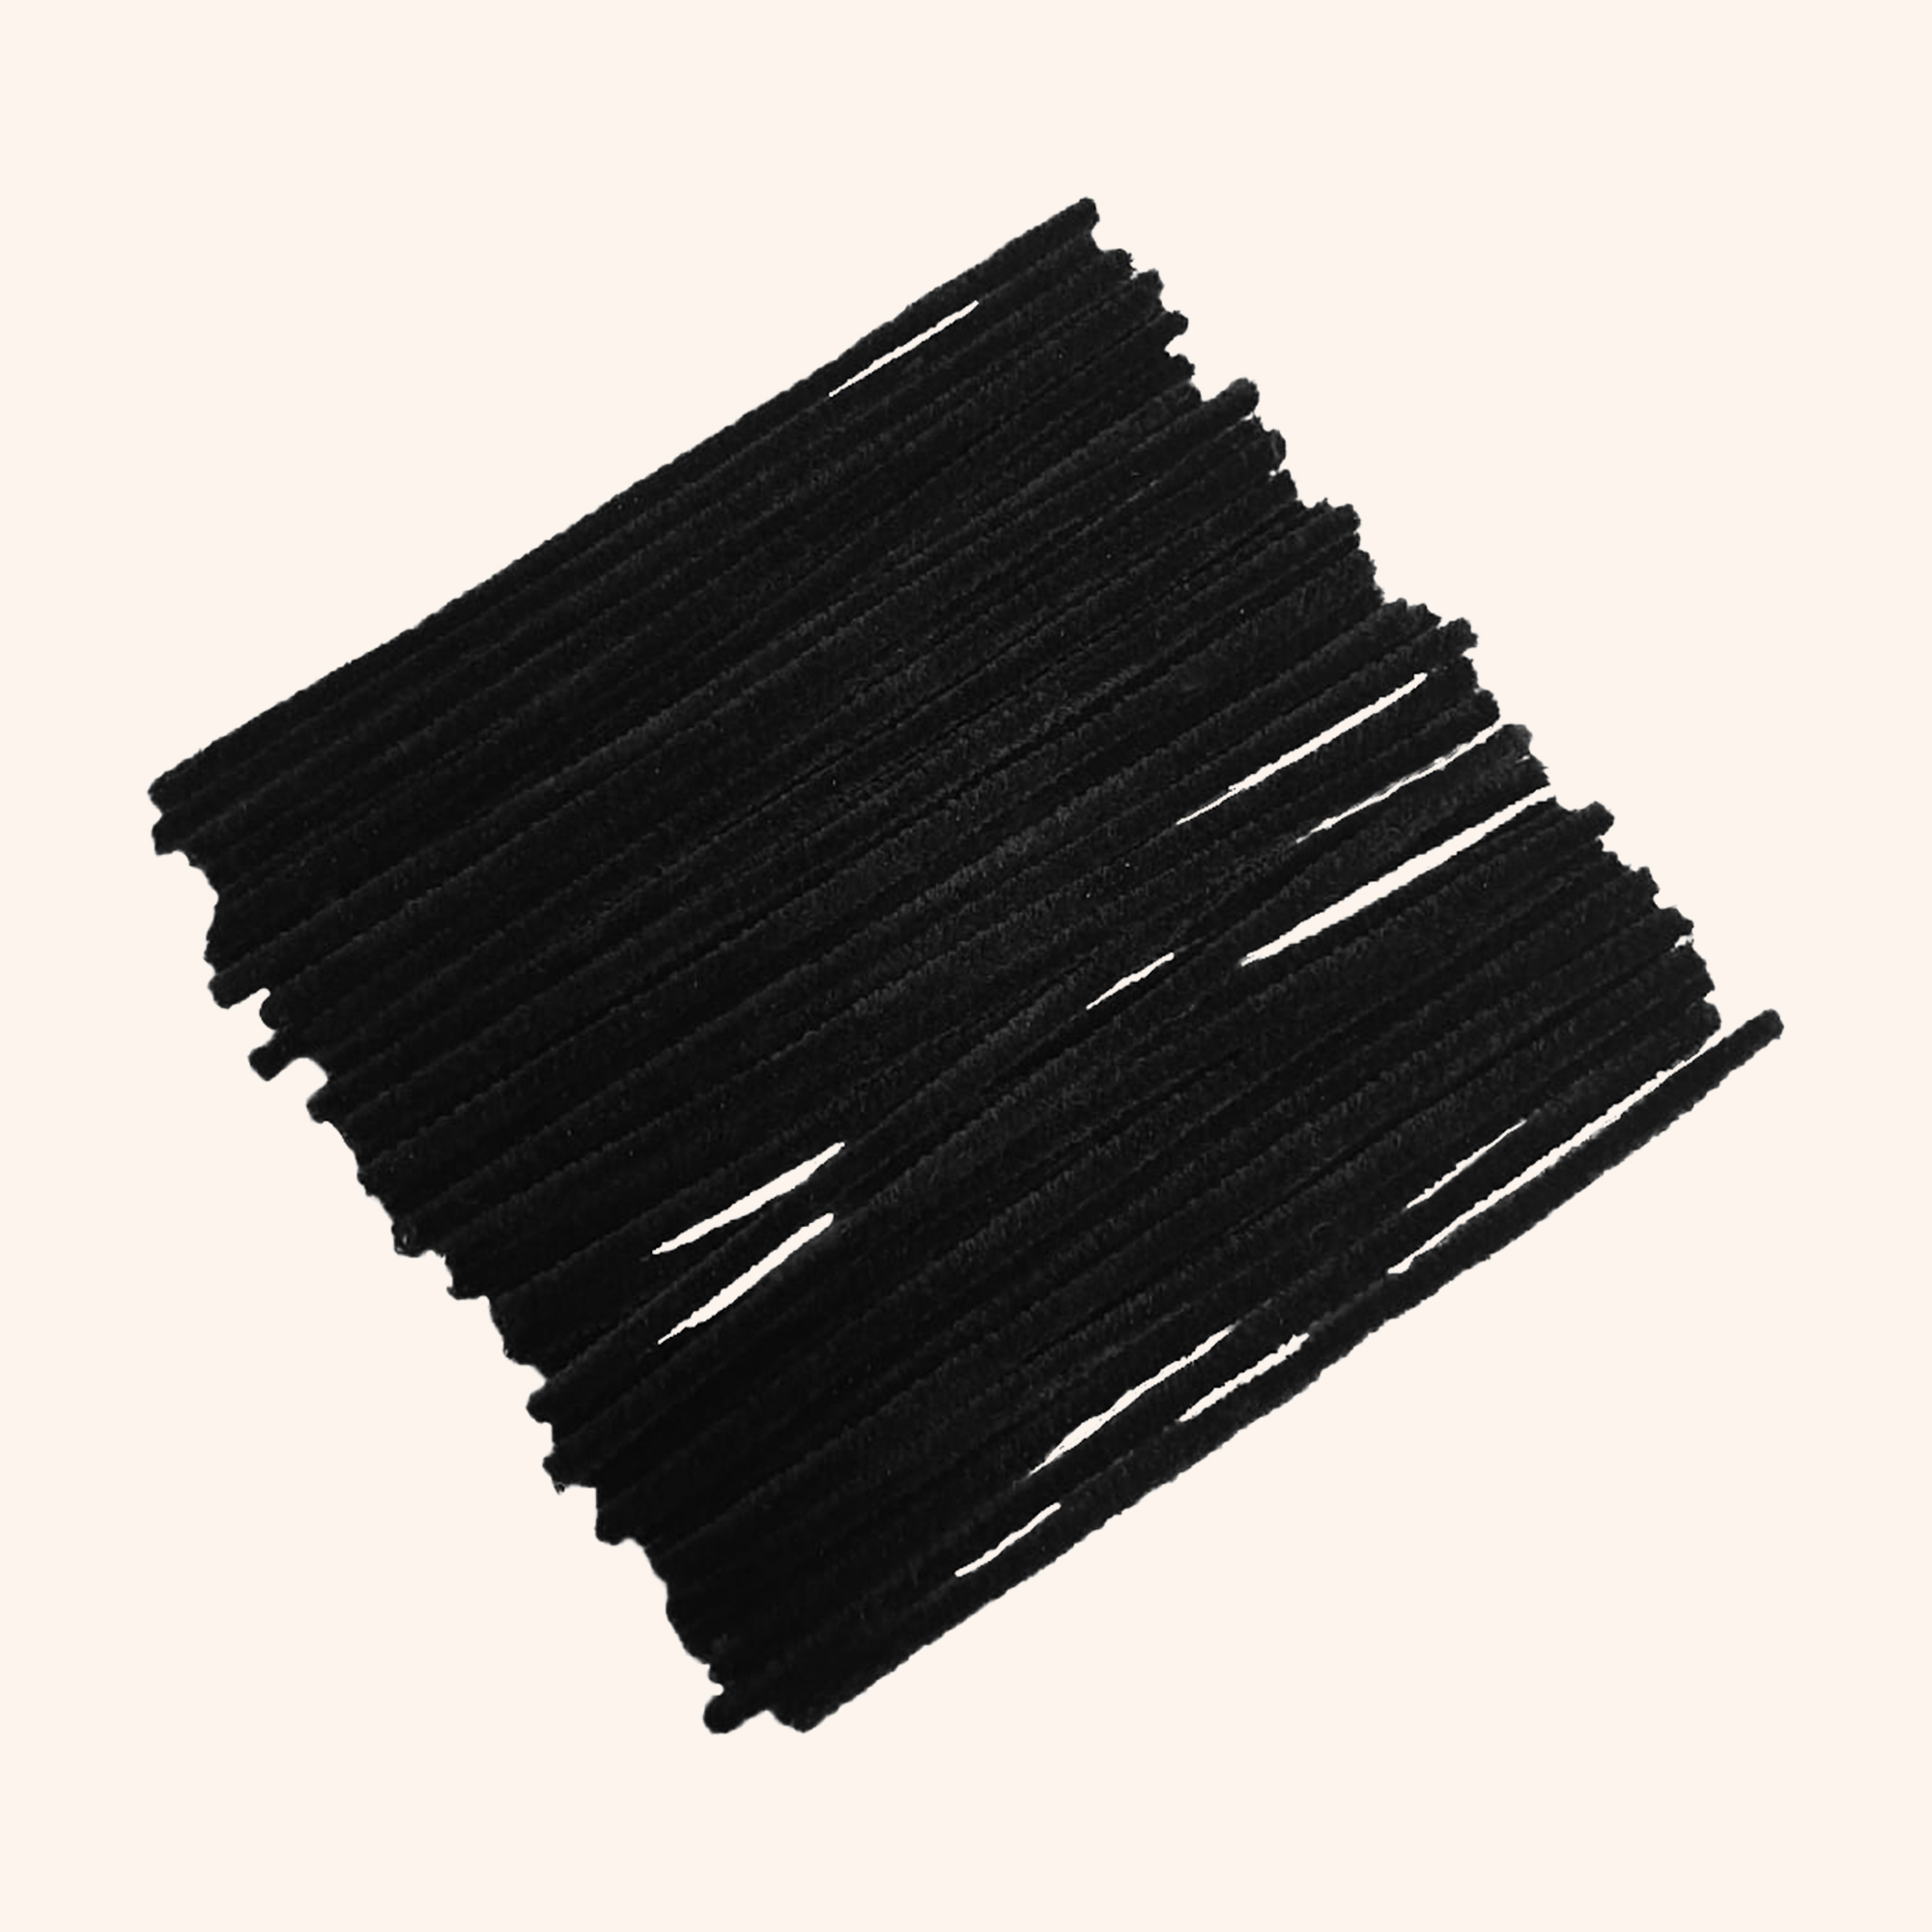 50 Medwakh Pipe Cleaners Black